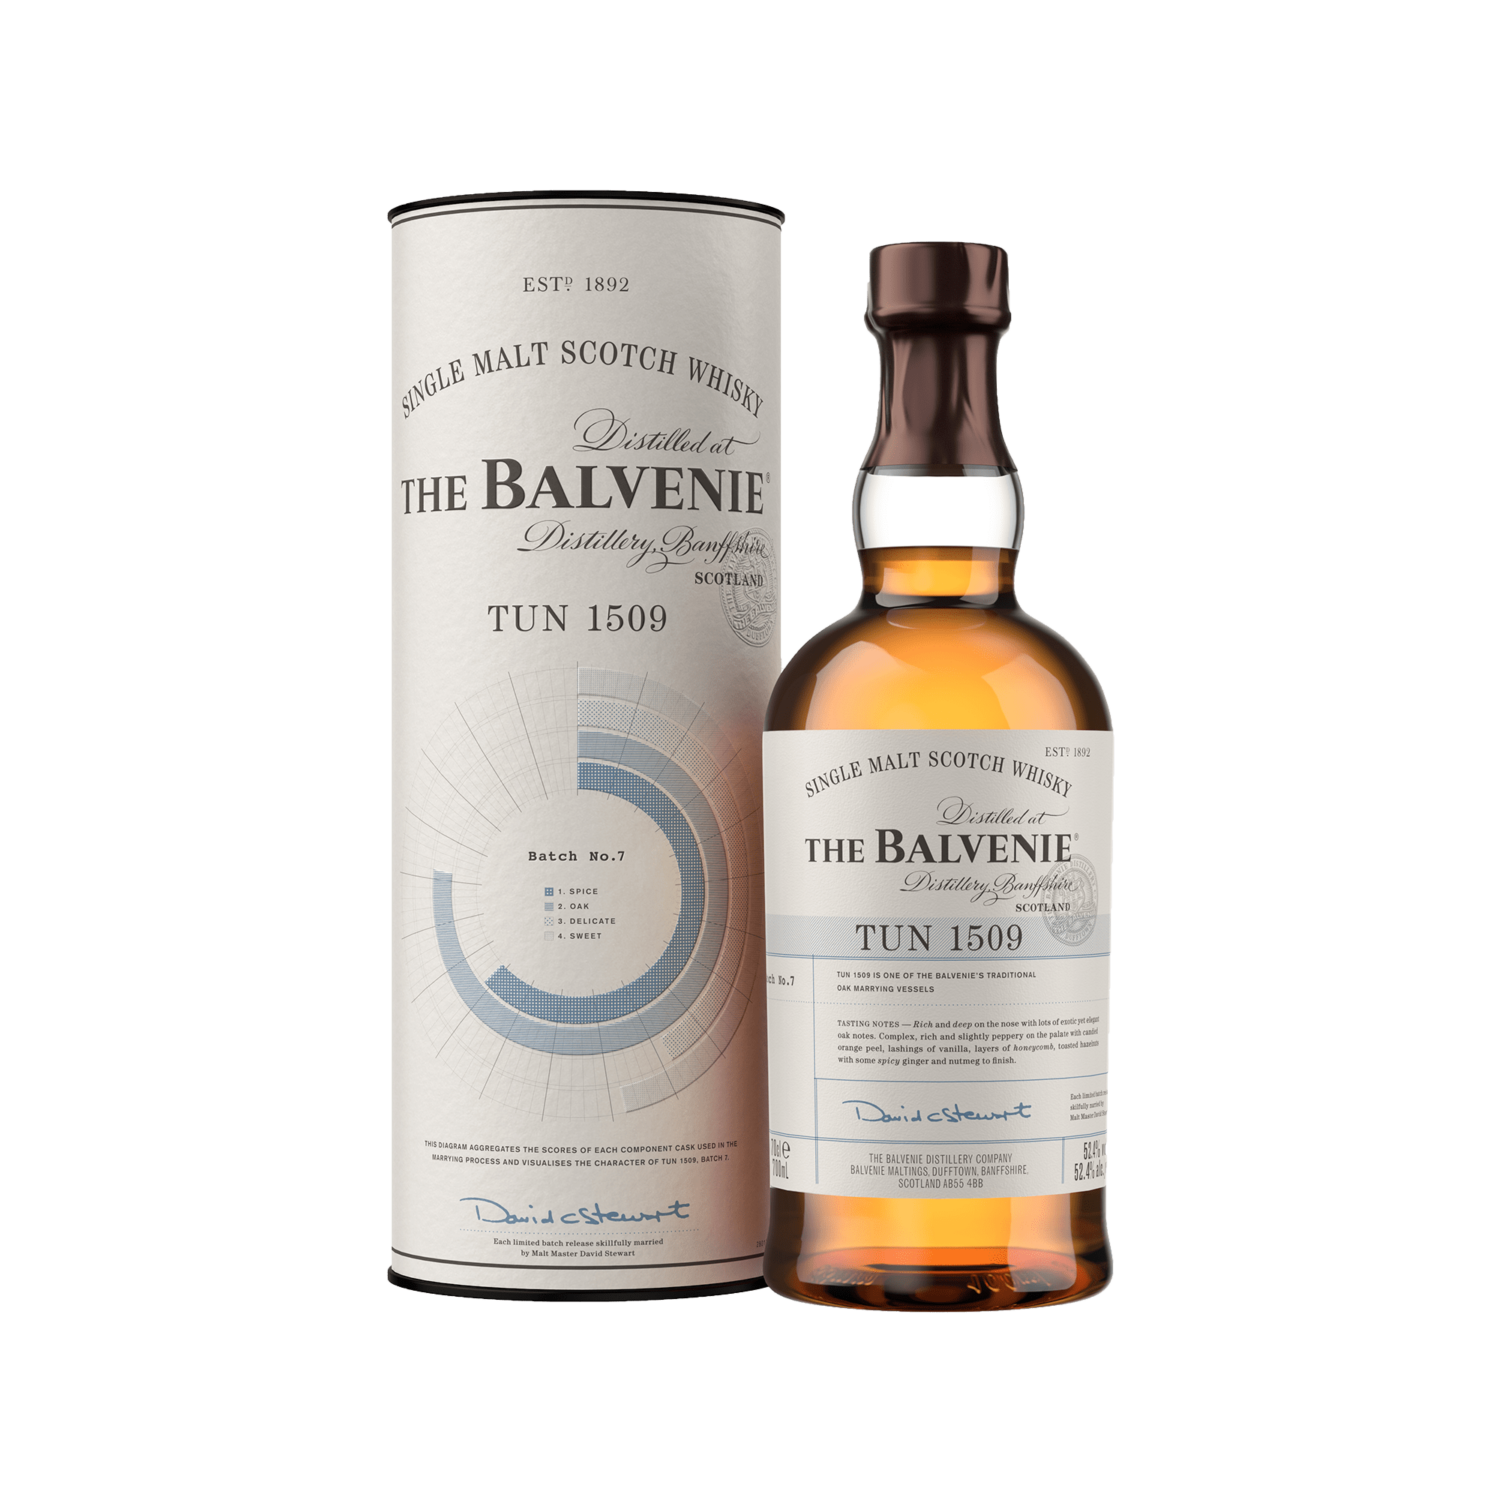 The Balvenie TUN 1509 Batch No. 7 - 70cl